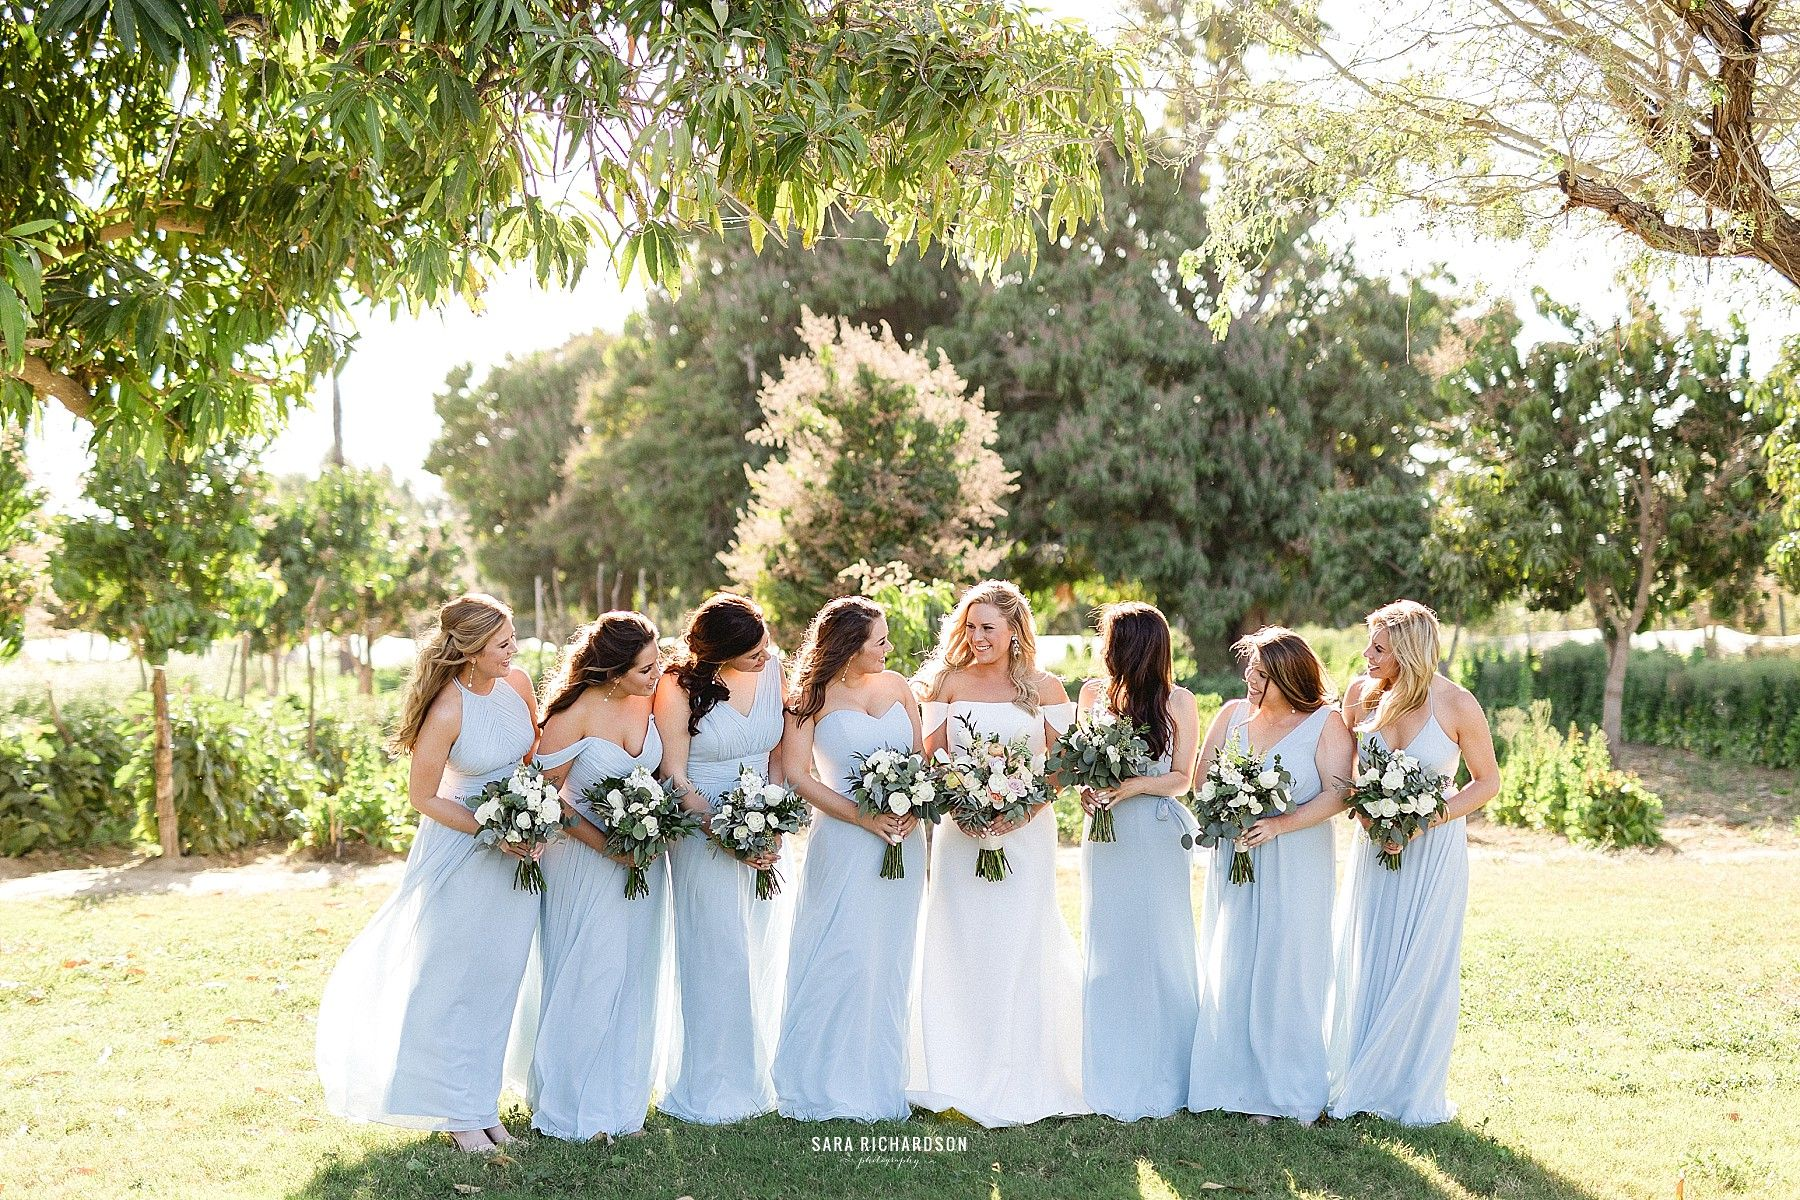 Bride with her Bridesmaids after the ceremony in a quick photo session.